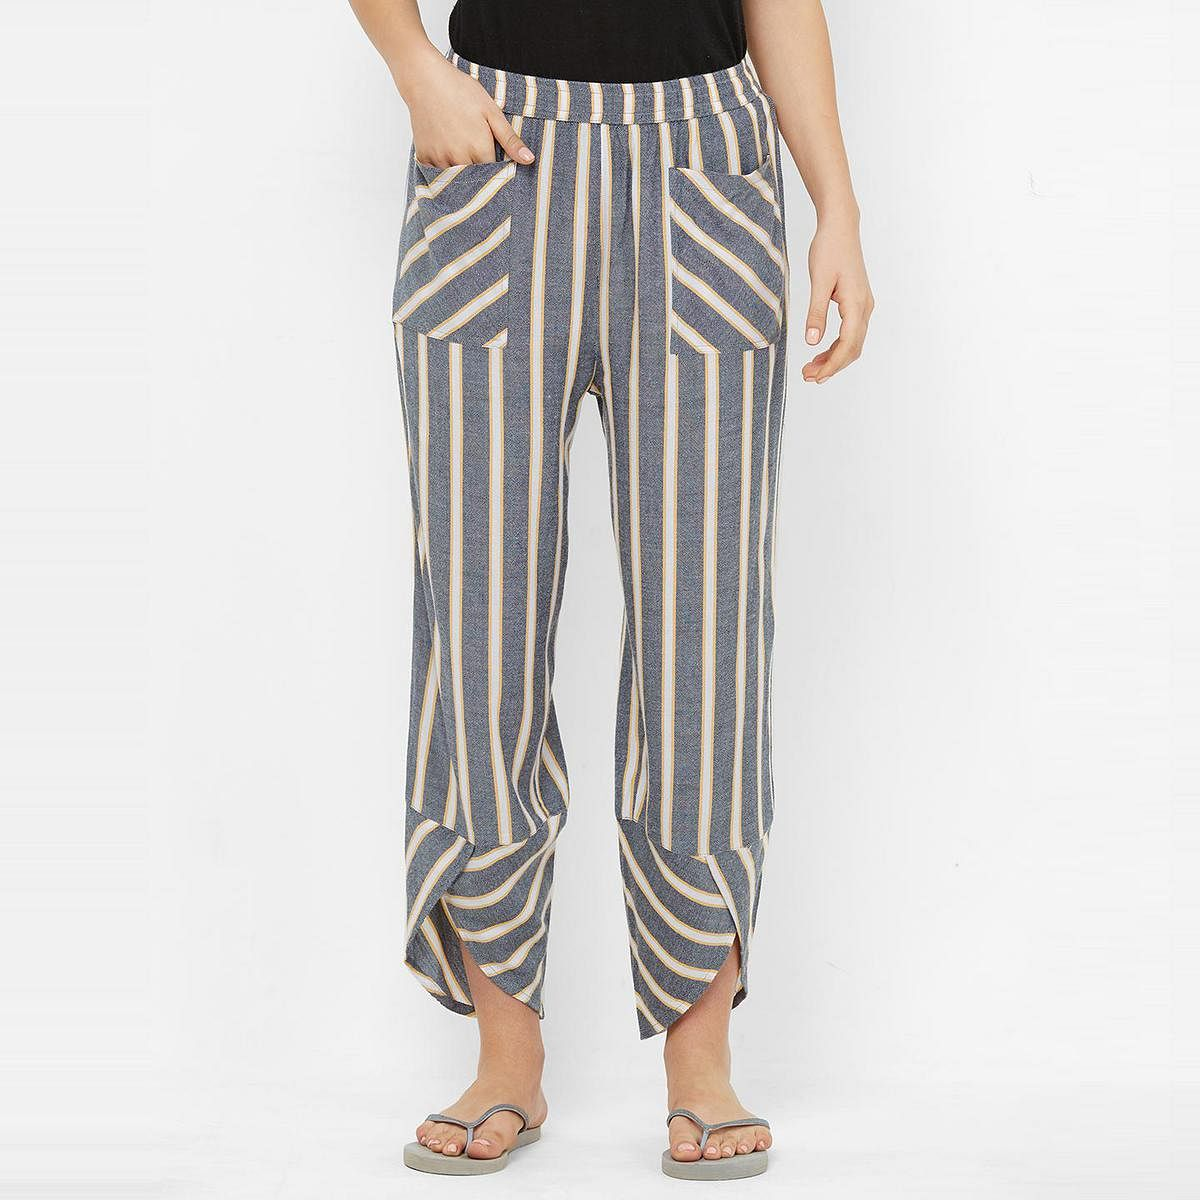 Mystere Paris - Charcoal Yellow Colored Classic Striped Rayon Lounge Pant